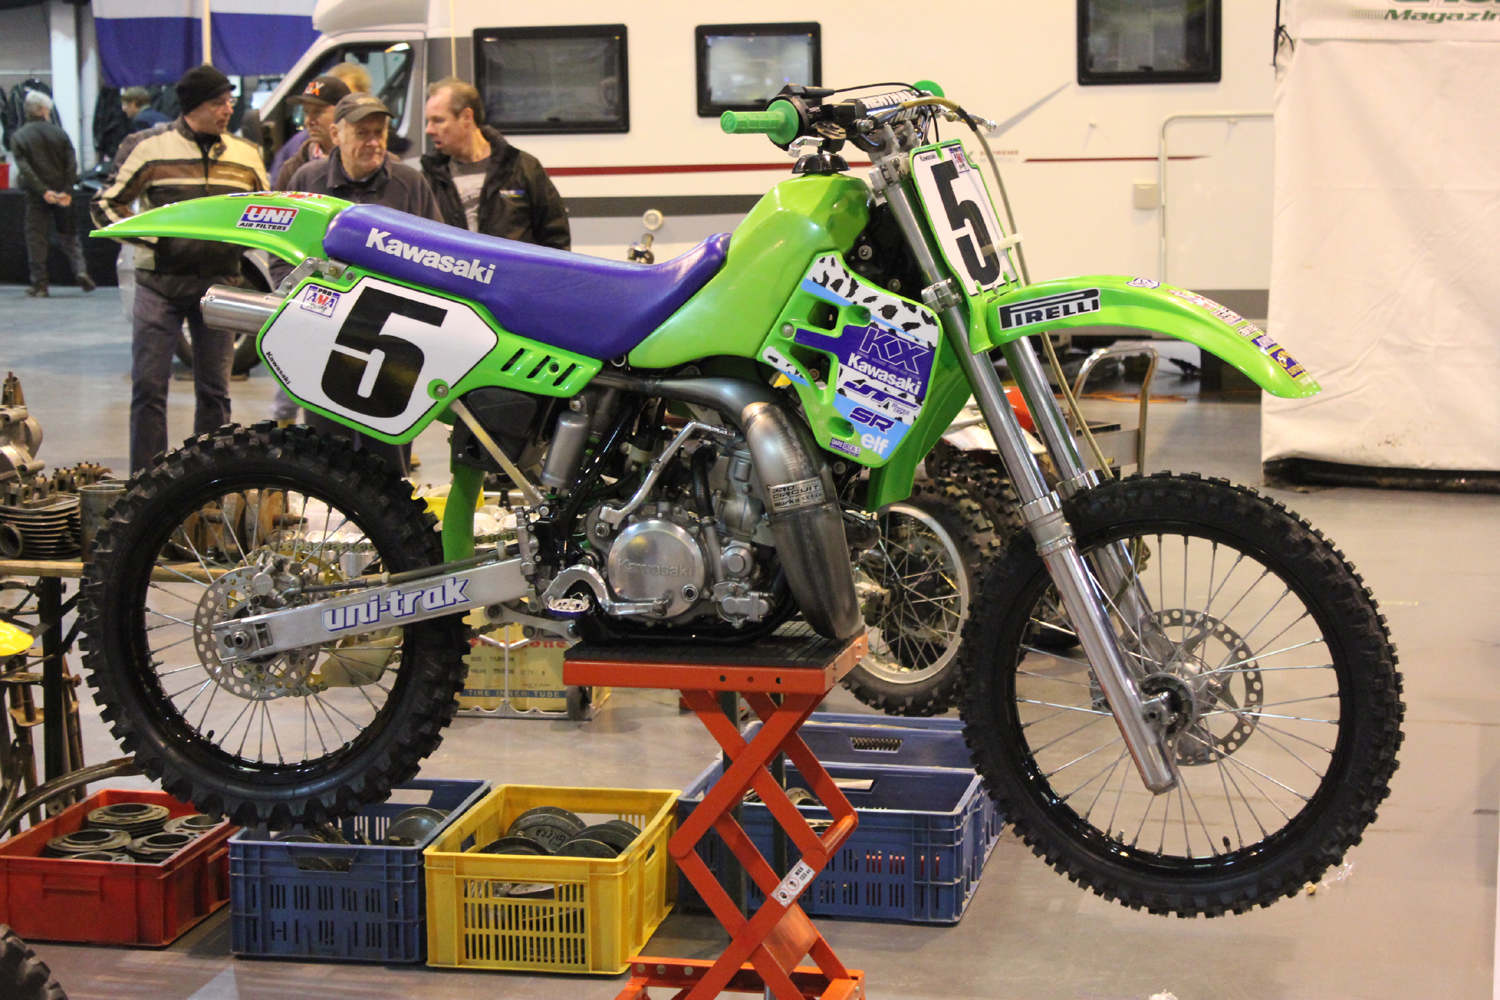 classicdirtbikerider.com-photo by Mr J-2015 Telford classic dirt bike show-KAWASAKI KX500